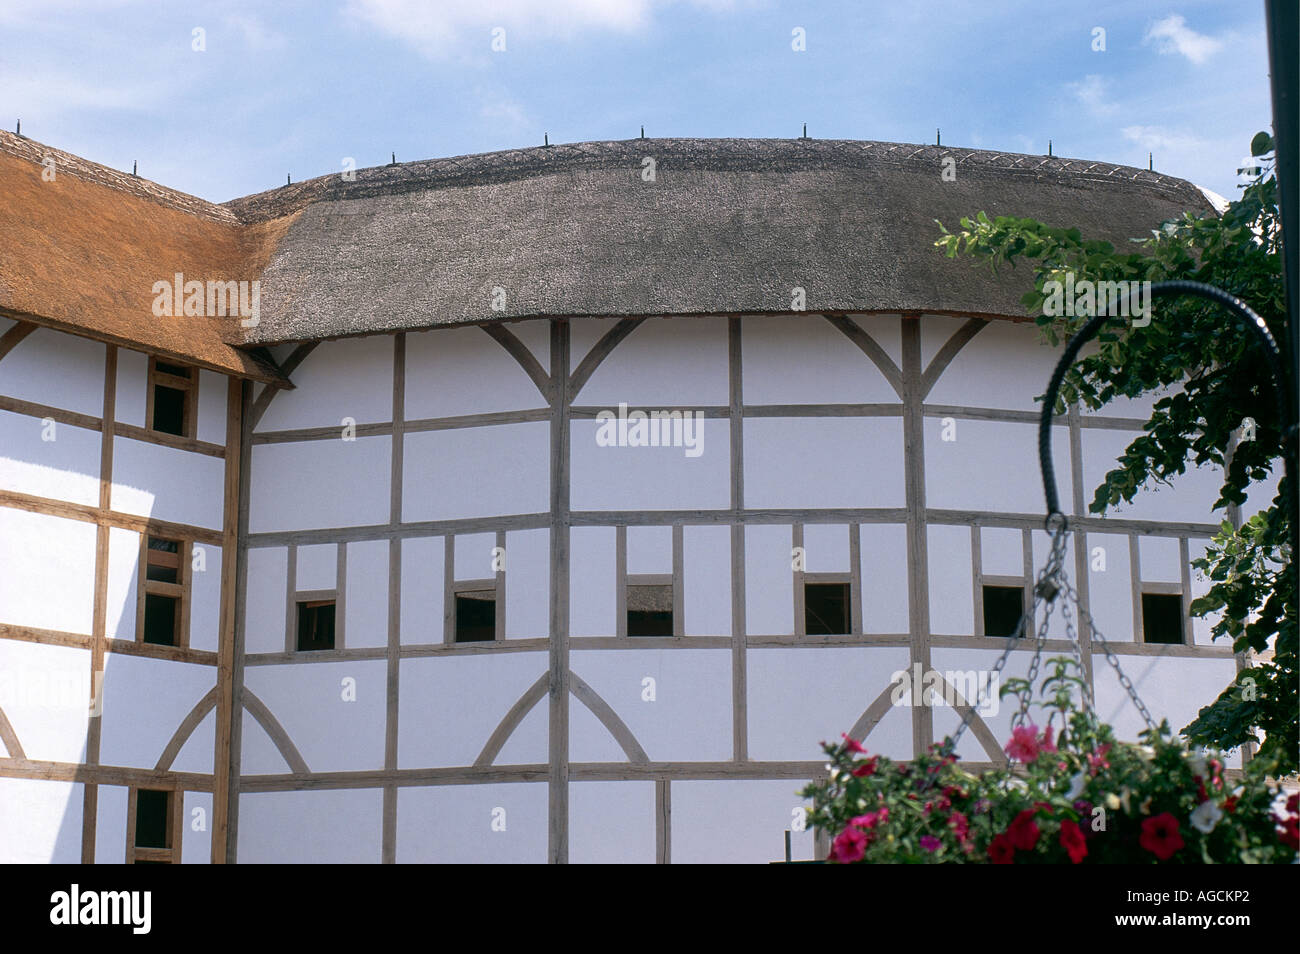 Tudor Facade the tudor facade of shakespeare s globe theatre now rebuilt on